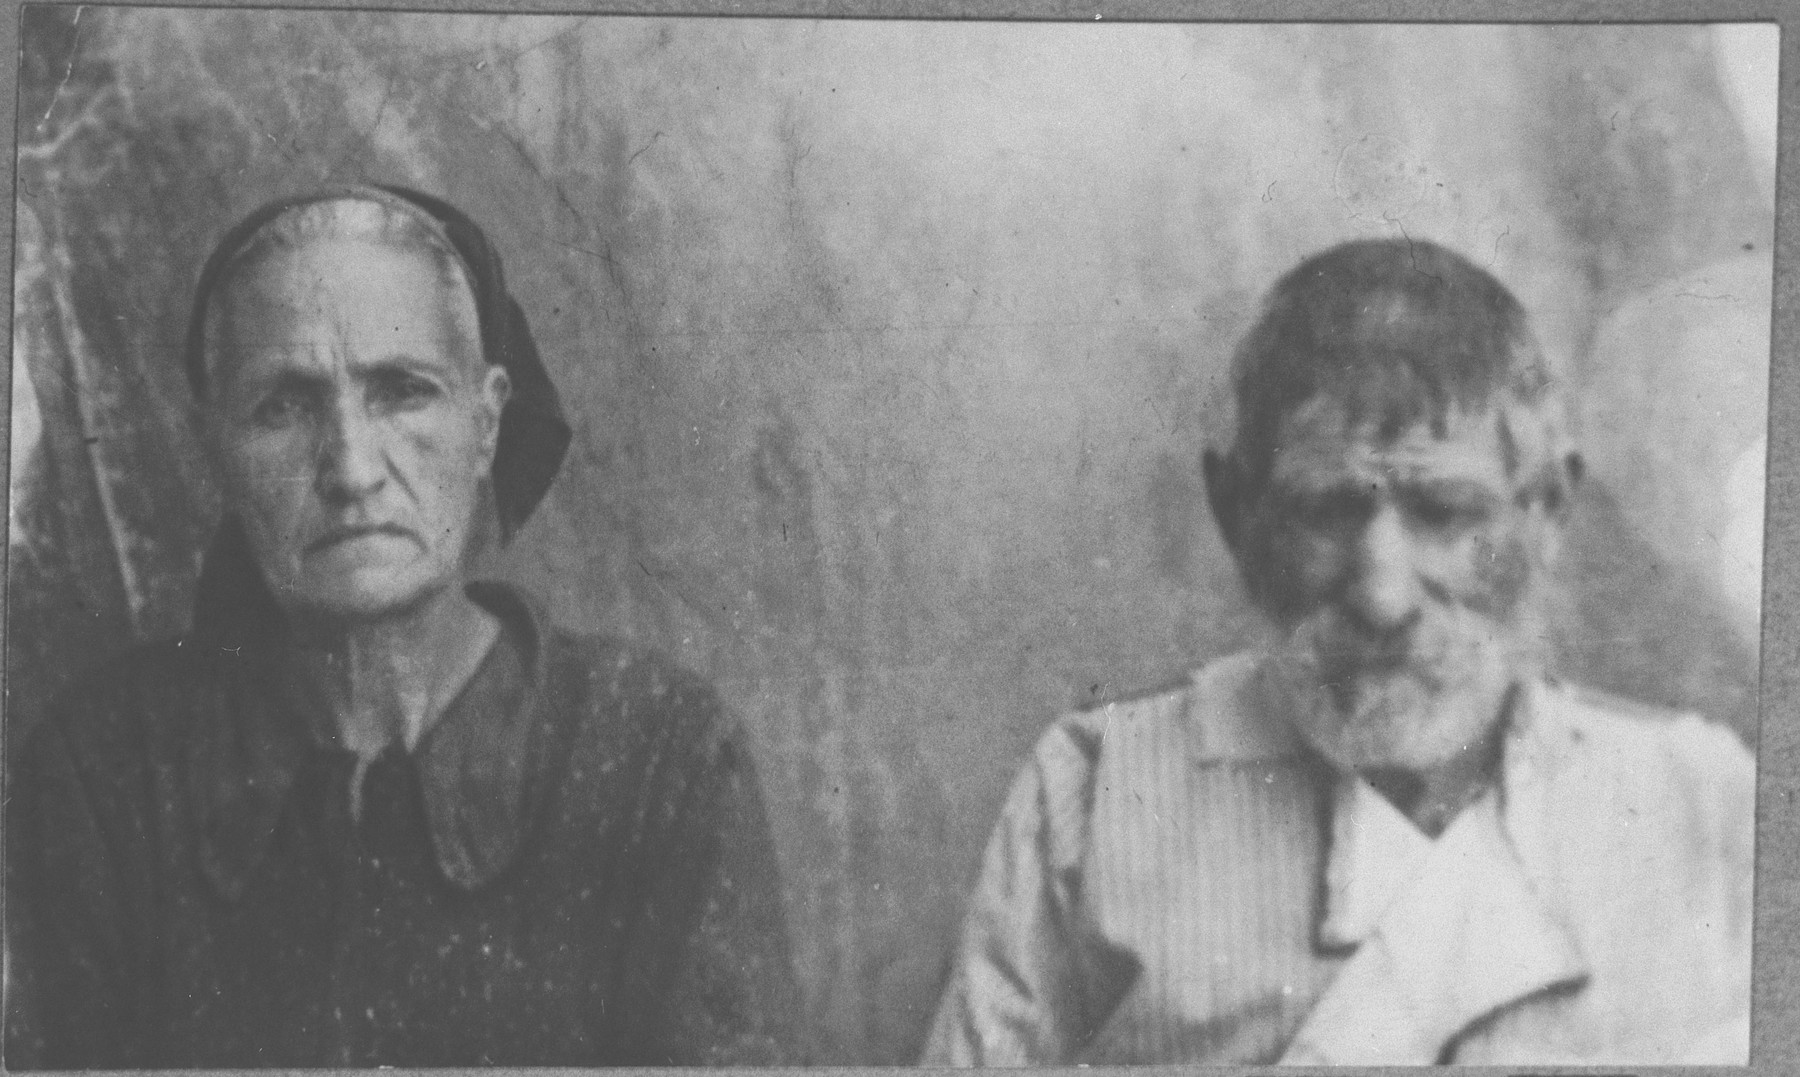 Portrait of Avram Ischach and his wife, Reina.  He was a porter.  They lived at Avliya 17 in Bitola.